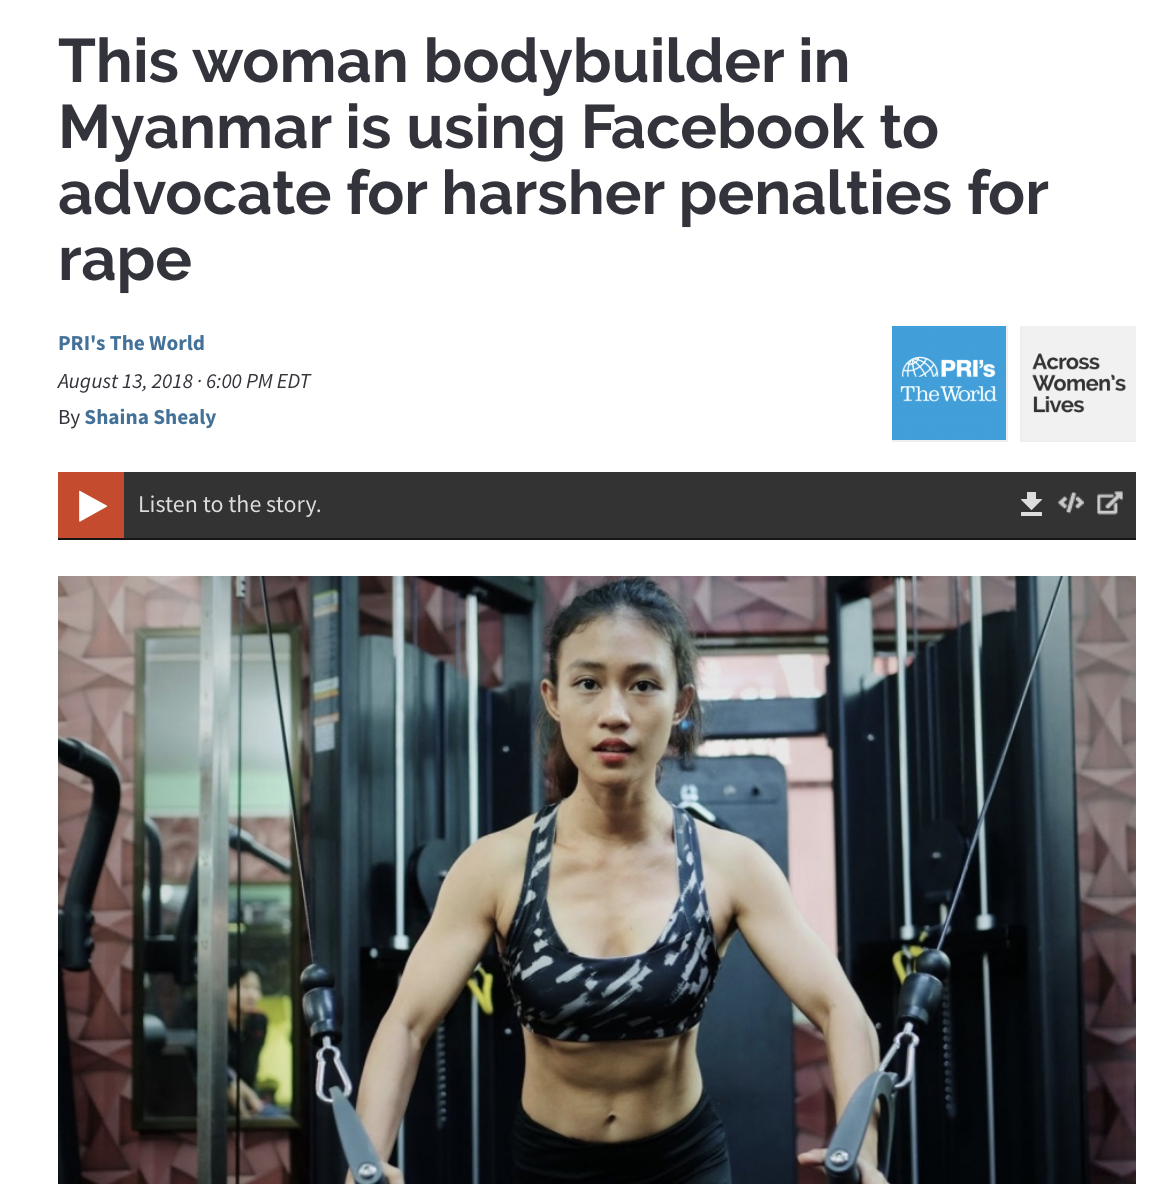 This woman bodybuilder in Myanmar is using Facebook to advocate for harsher death penalties for rape